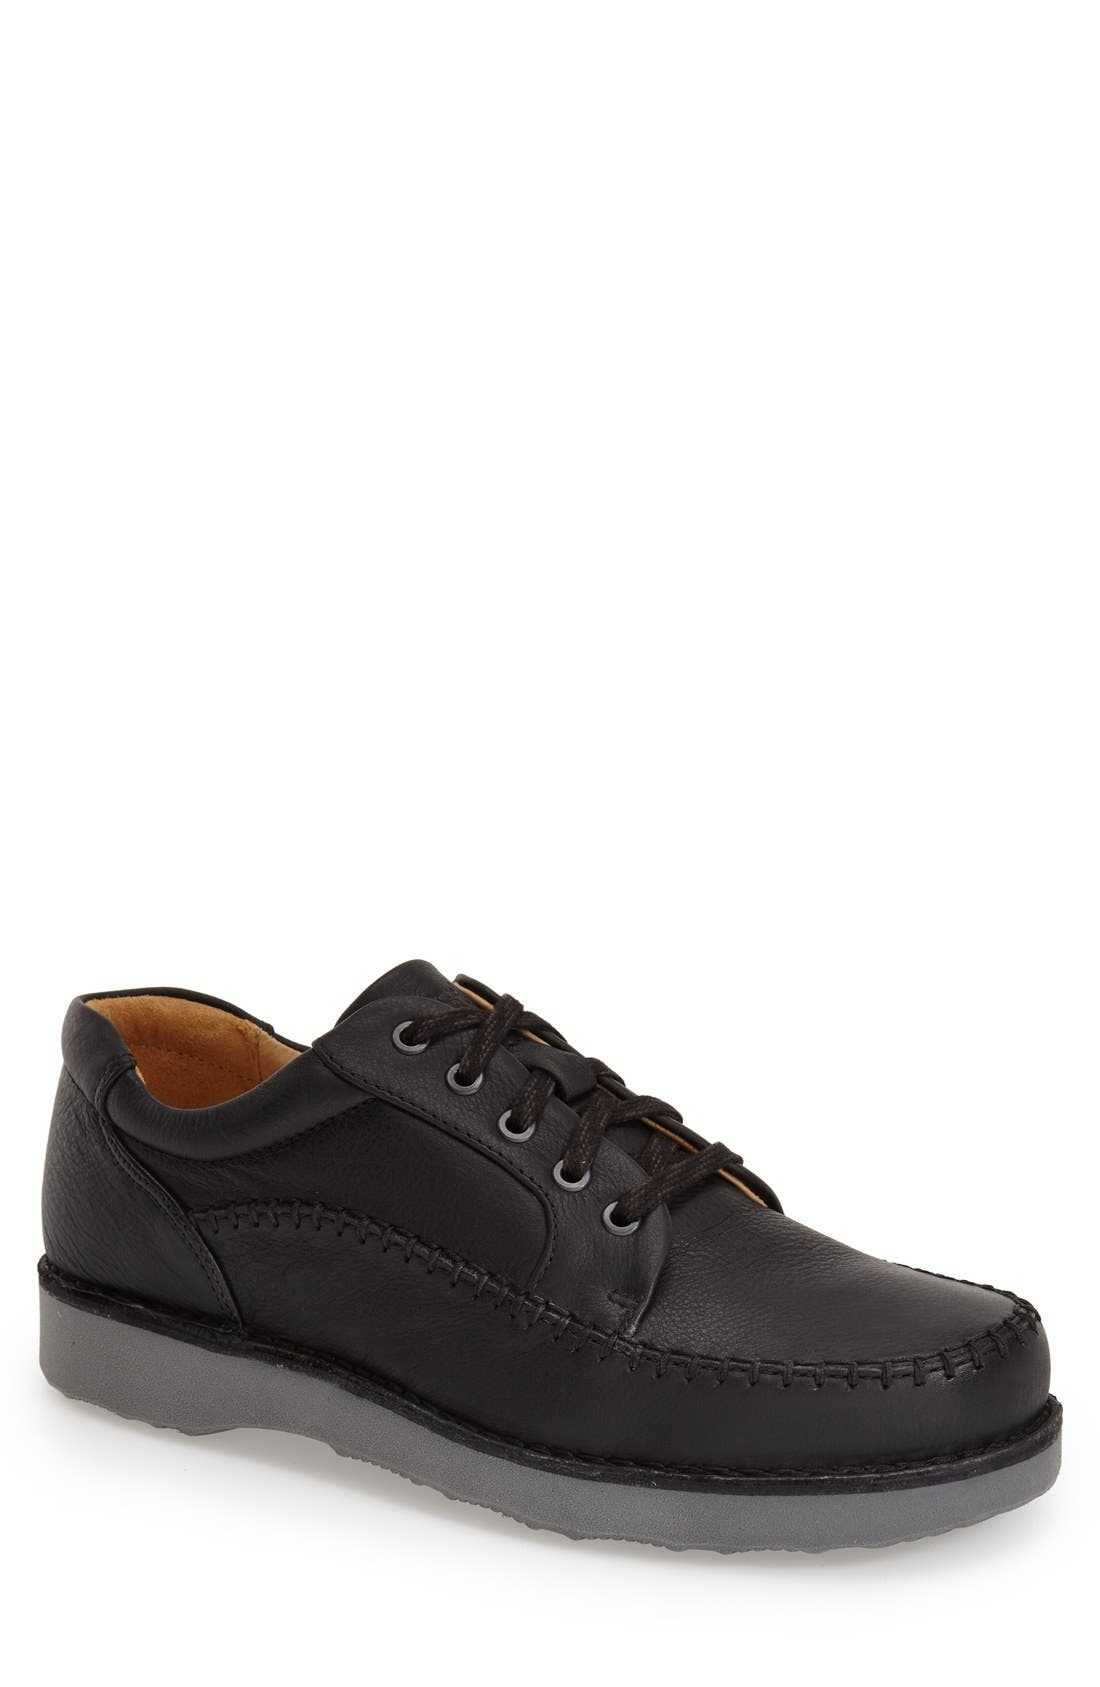 Samuel Hubbard 'Get-Up' Moc Toe Derby (Men)